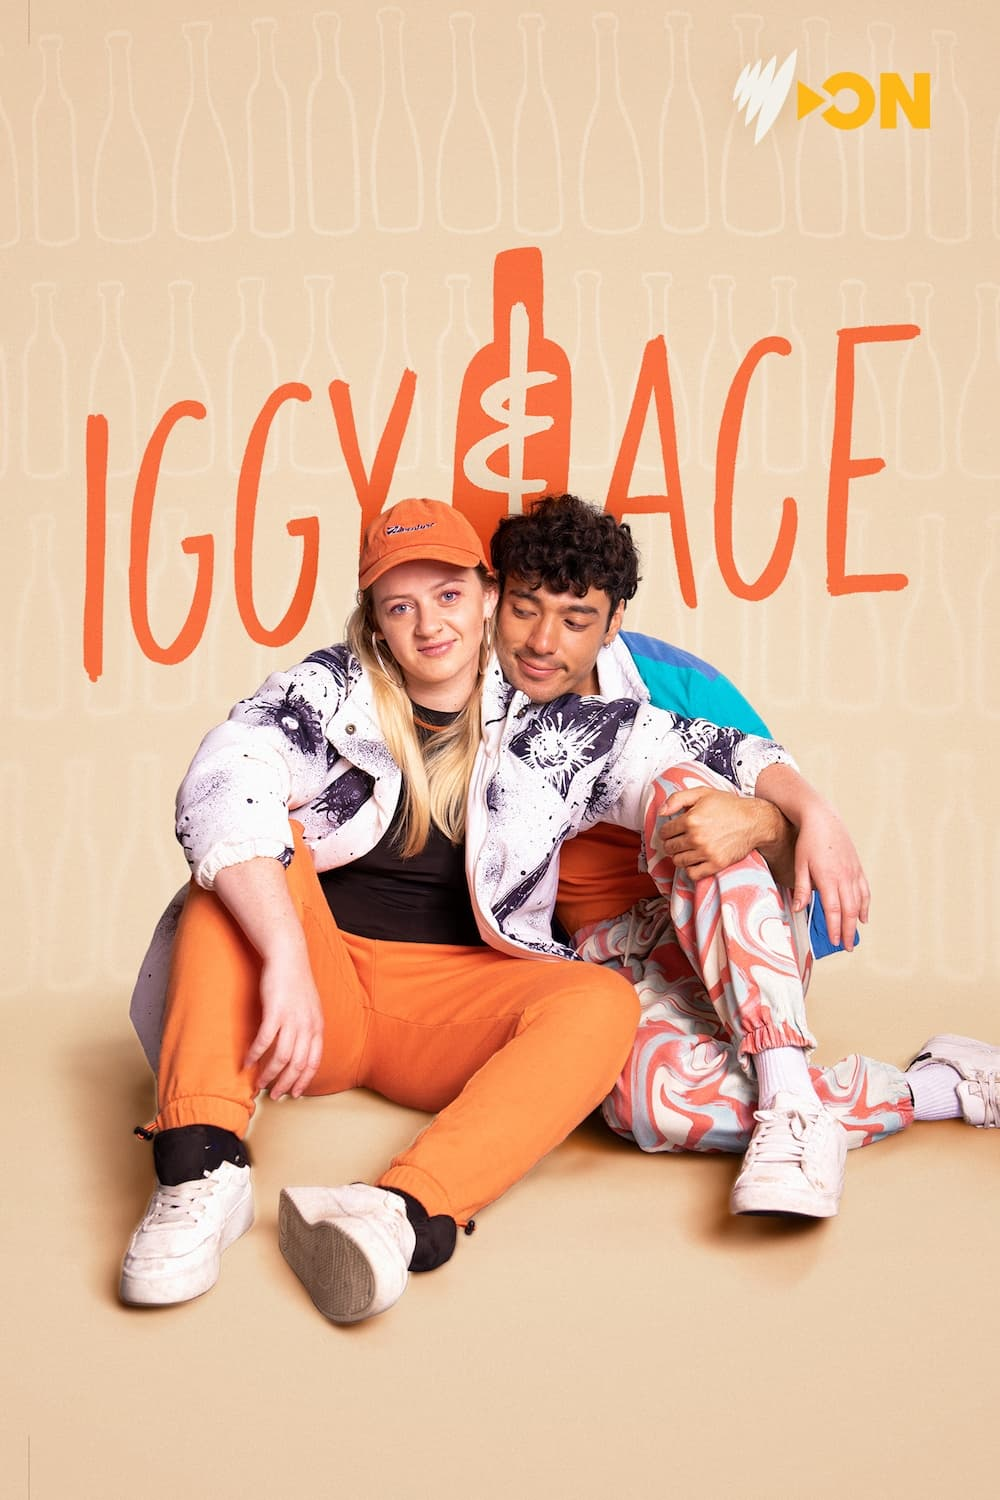 Iggy & Ace TV Shows About Friendship